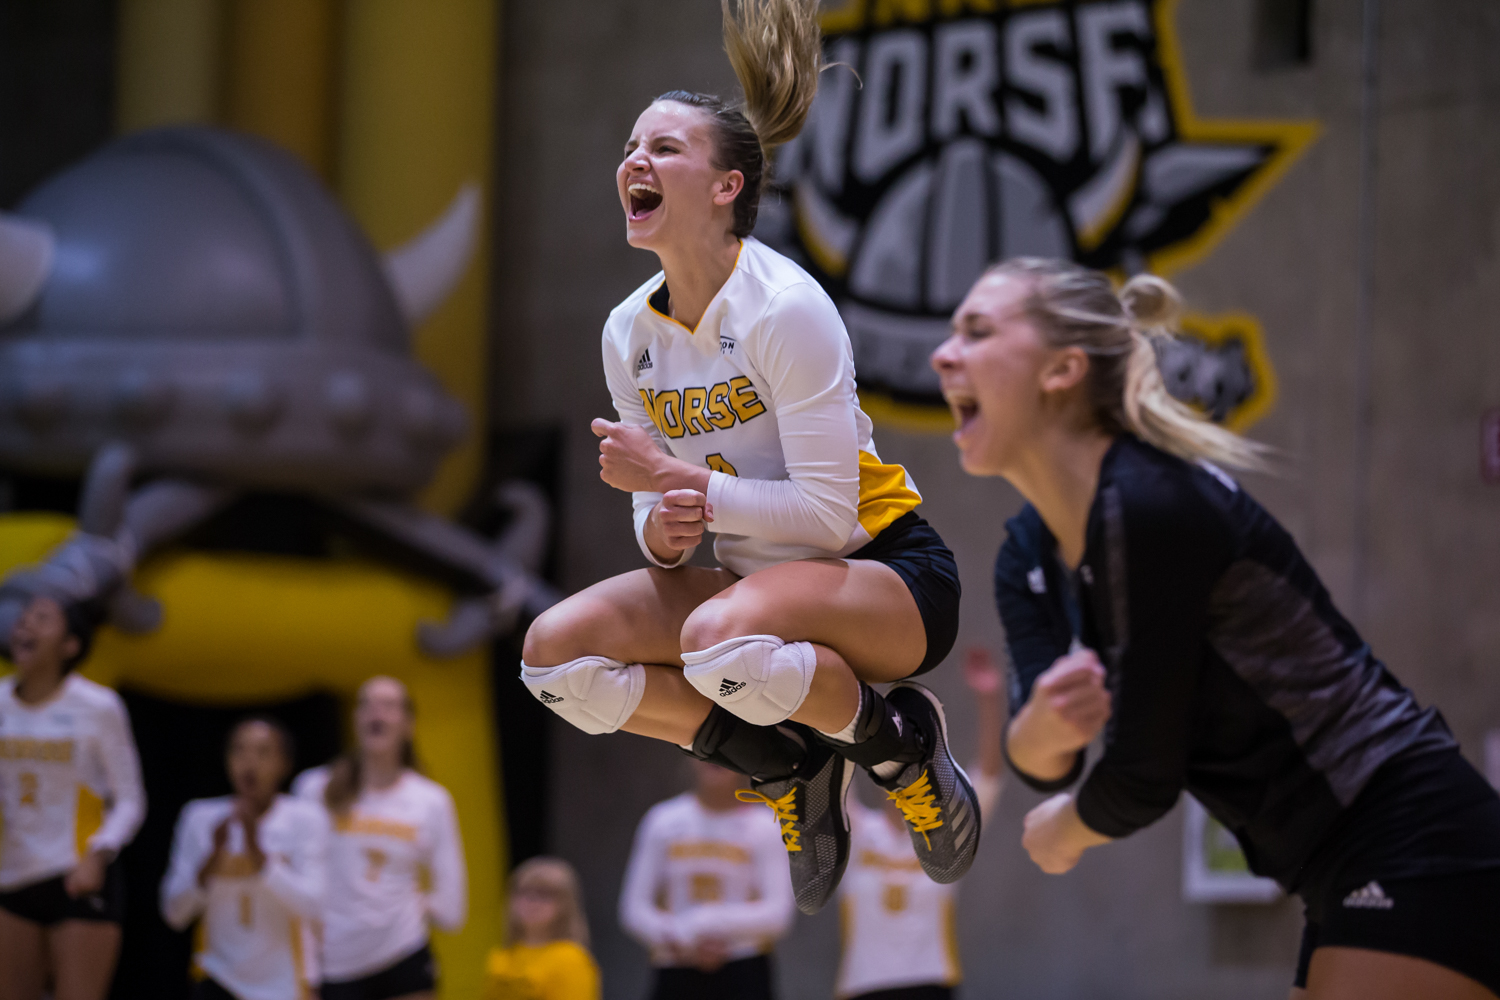 Haley Libs (4) celebrates after a Norse point during the game against Green Bay.